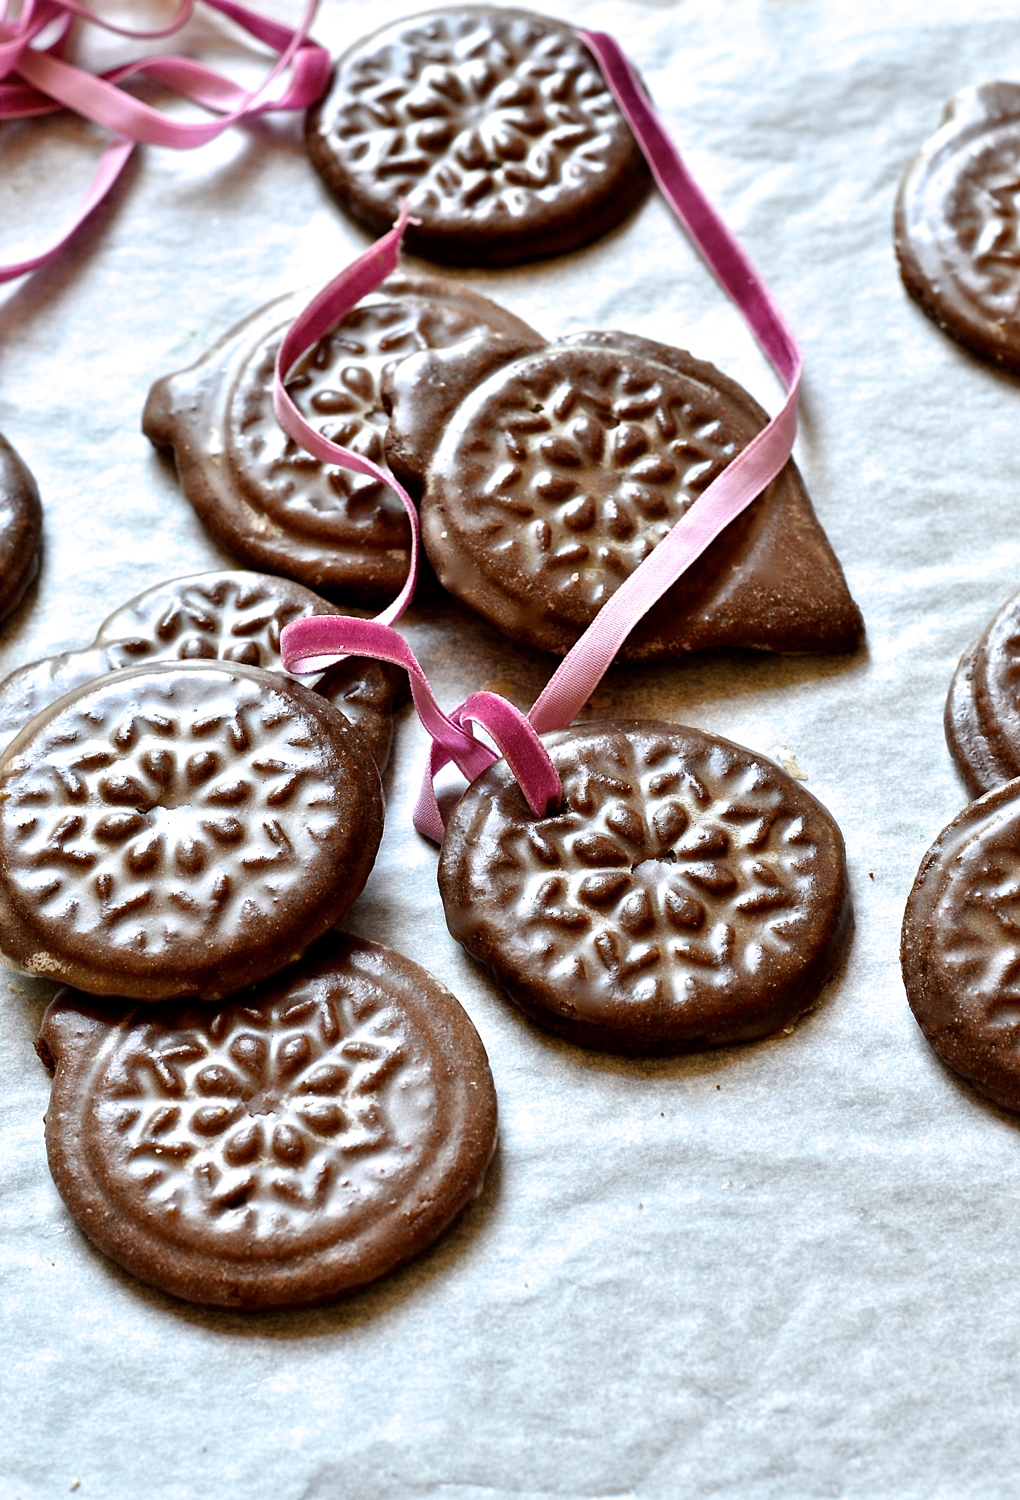 Ottolenghi's Ginger bread tile cookies